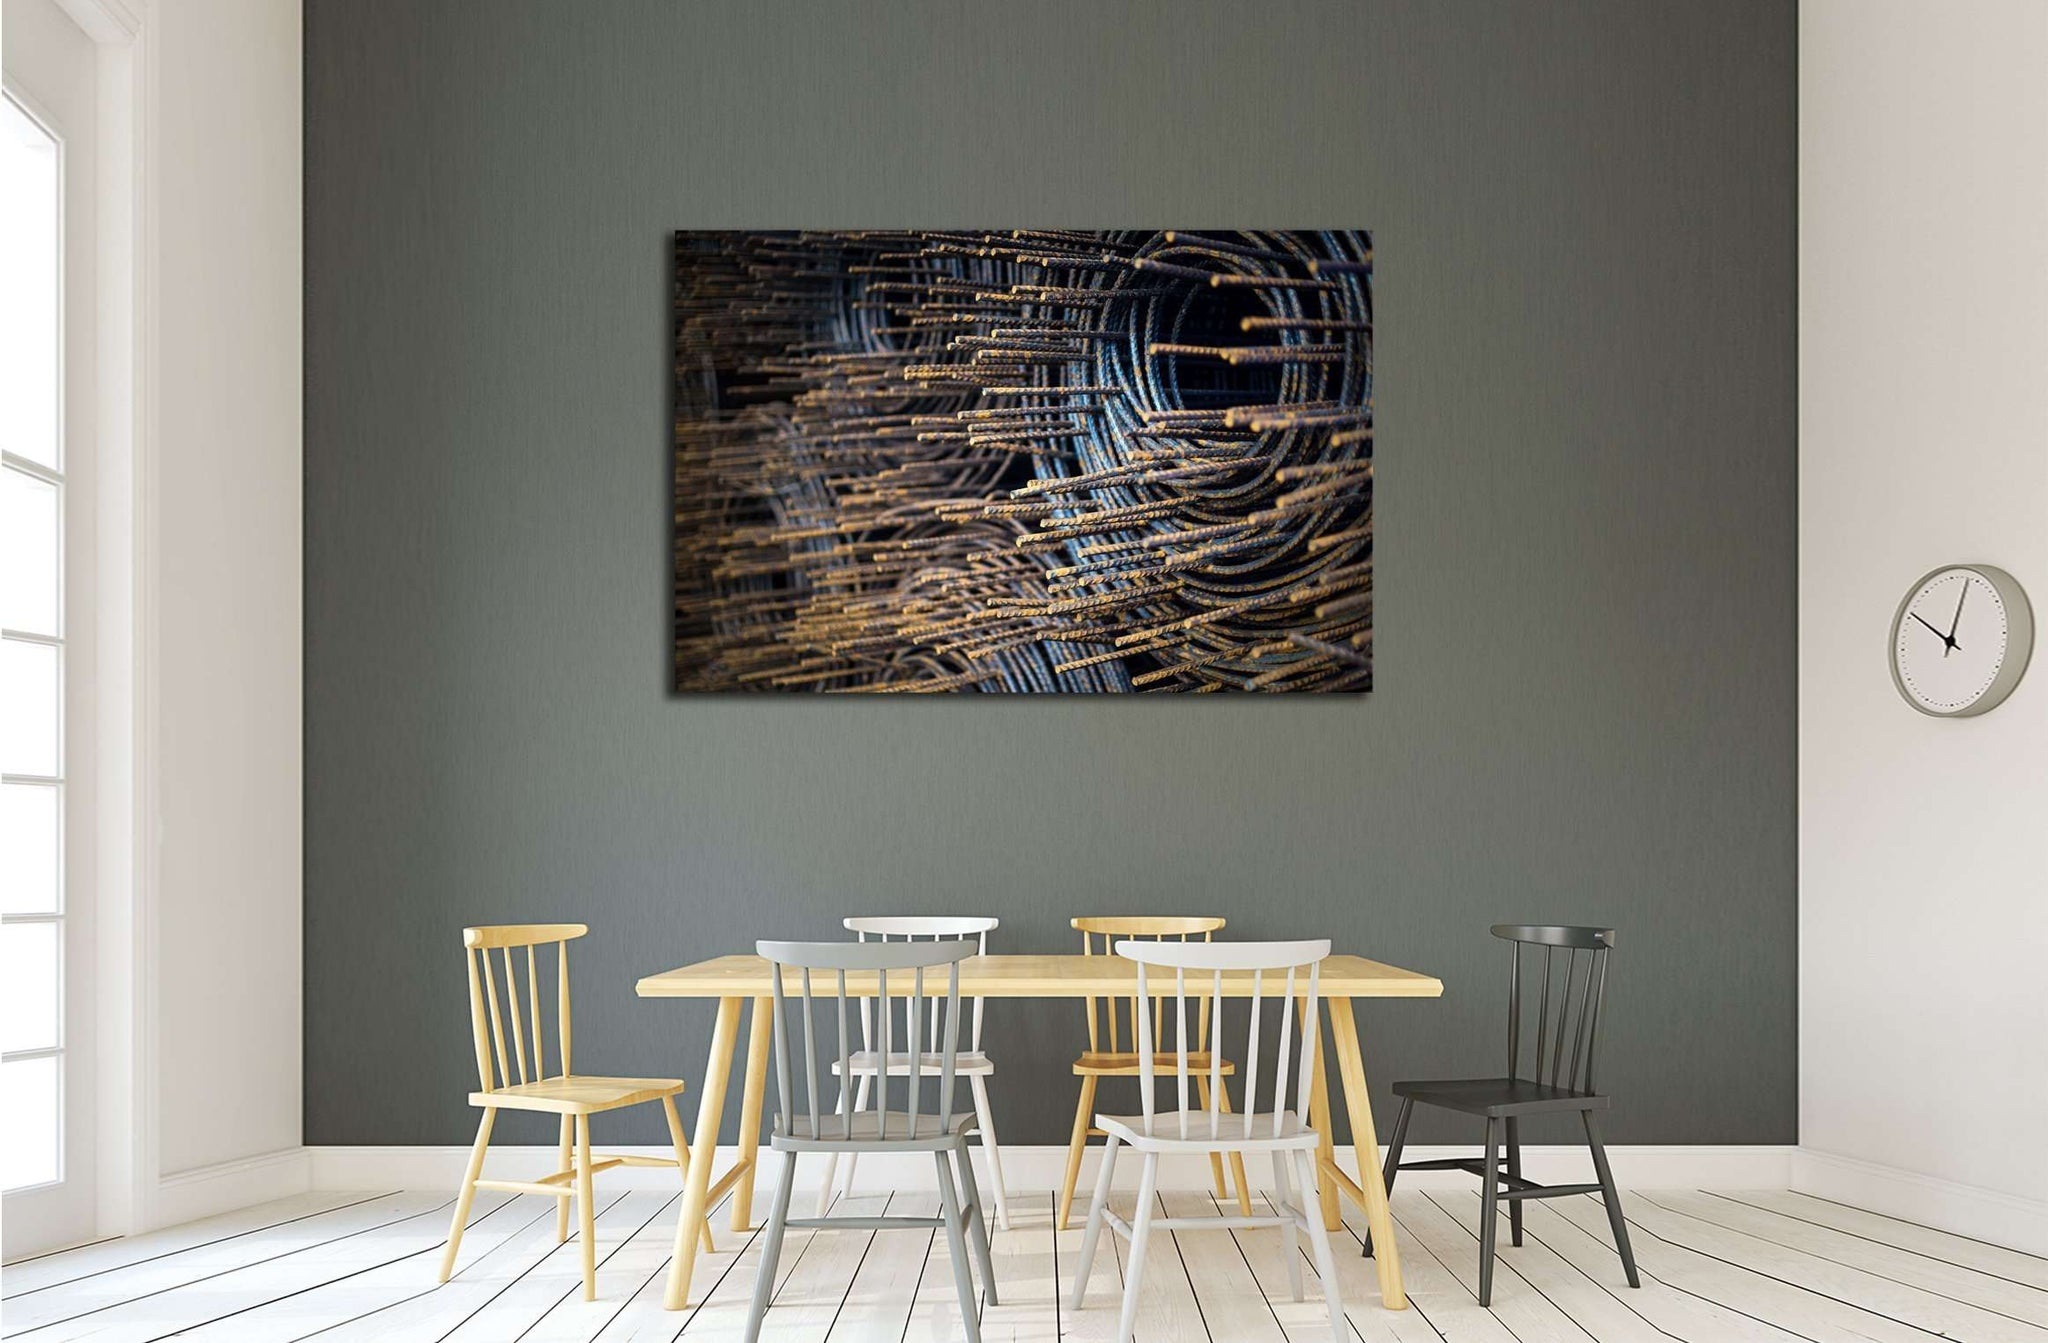 An Steel Bar rusty with Soft light №3241 Ready to Hang Canvas Print